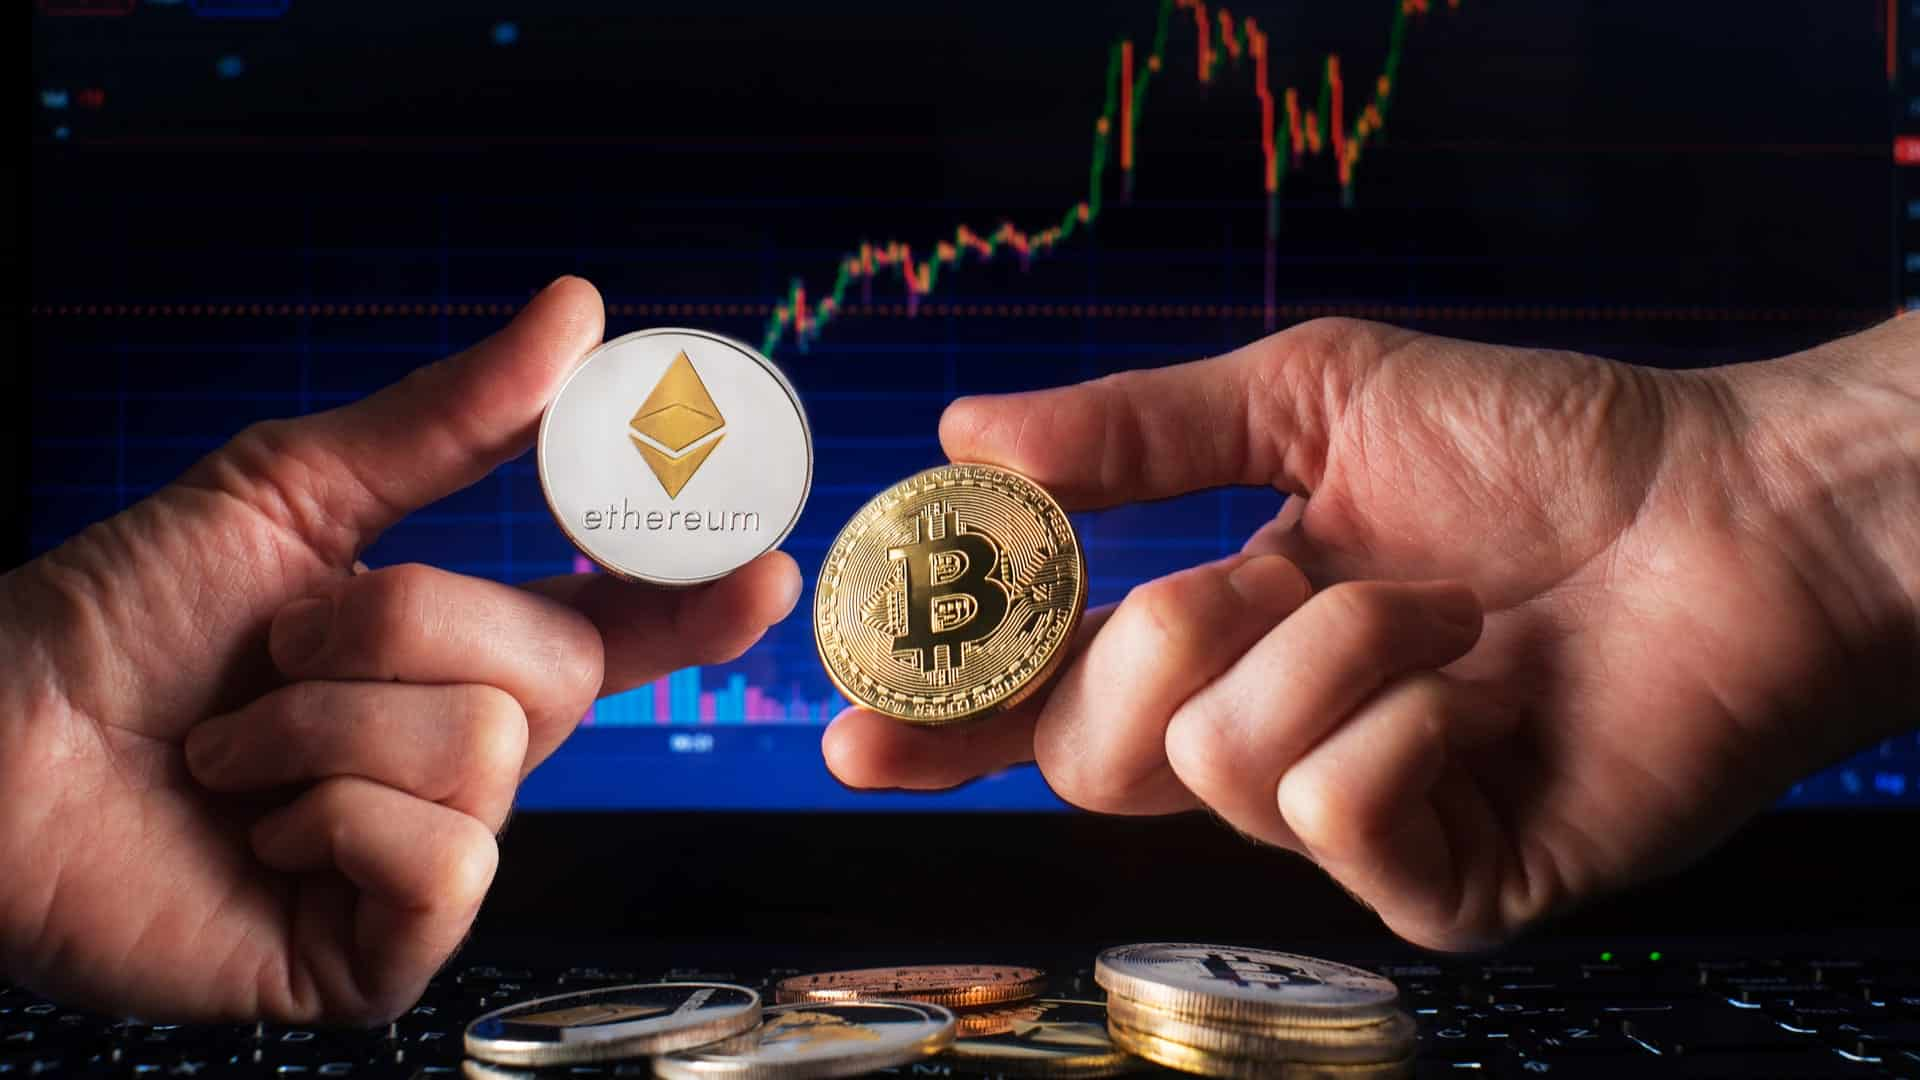 Mark Cuban and Barry Sternlicht prefer BTC to gold – they also comment on ETH!